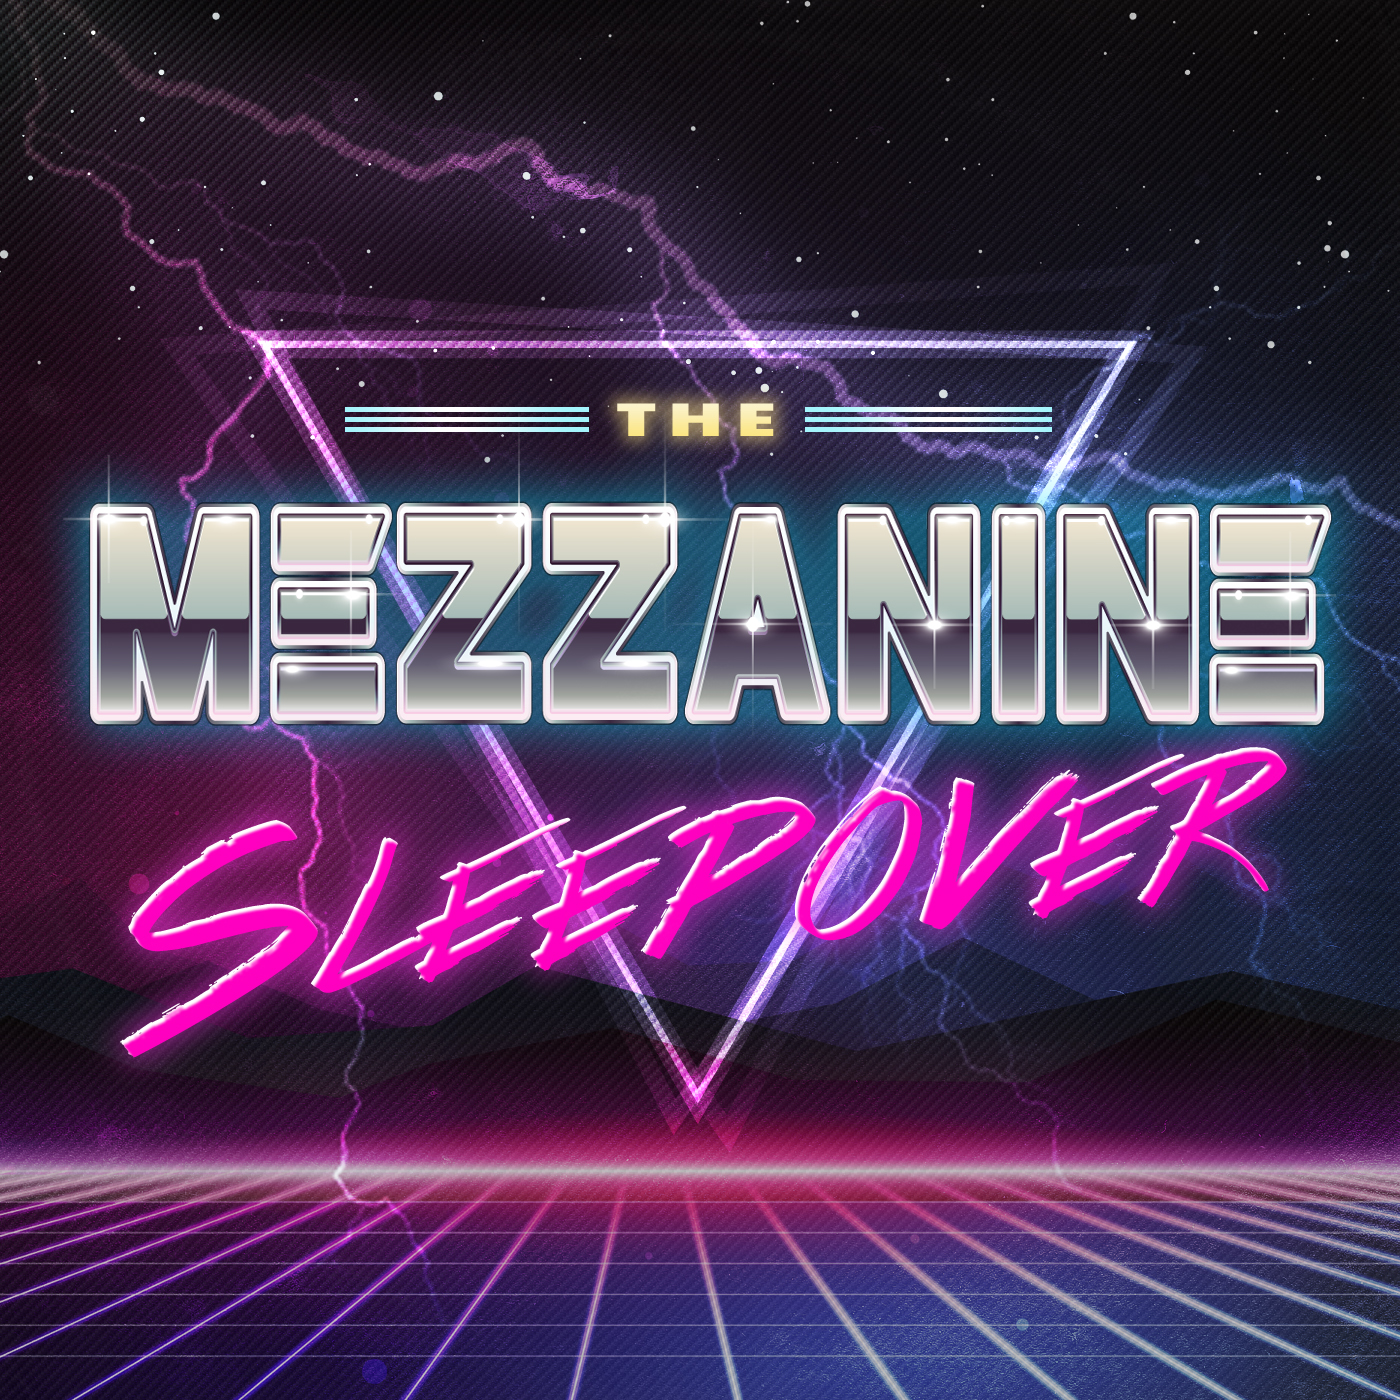 The Mezzanine Sleepover